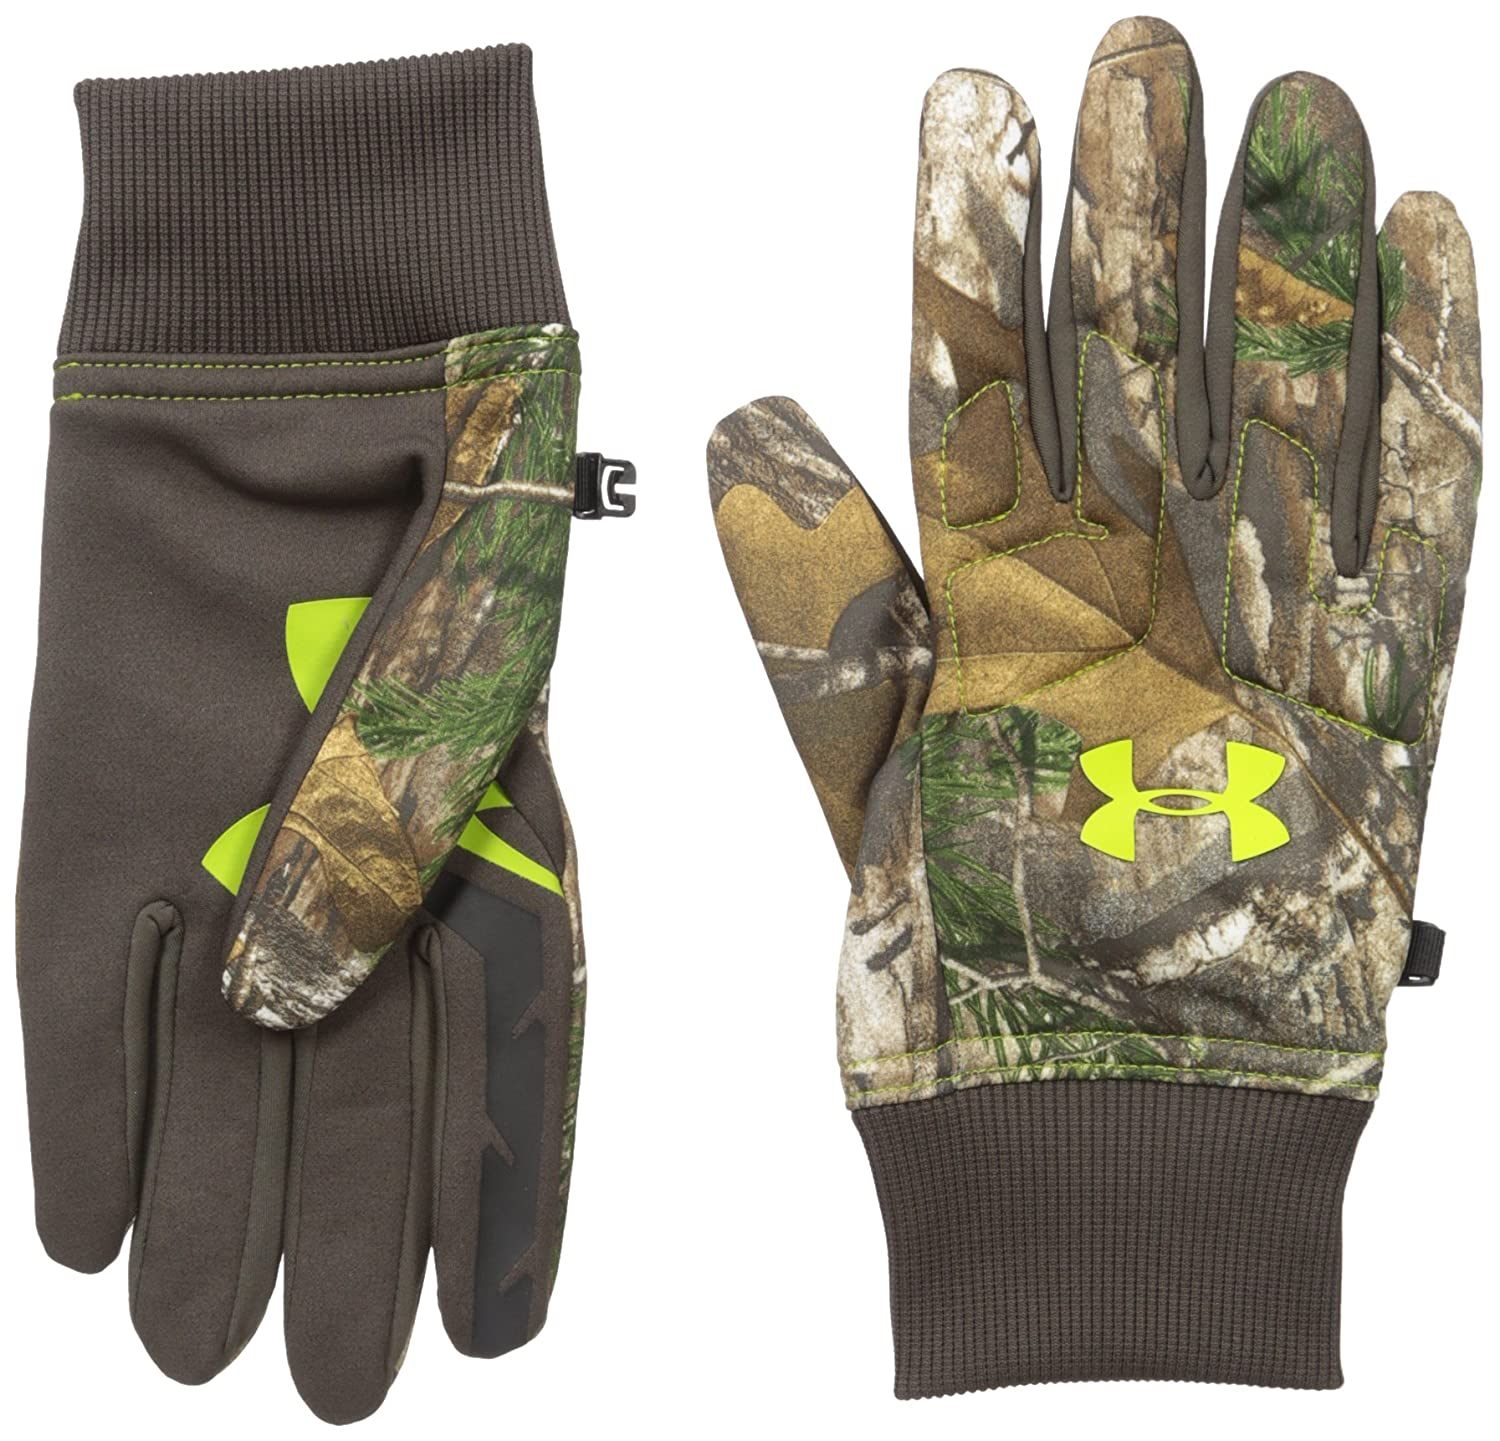 Mens fleece gloves xxl - Amazon Com Under Armour Men S Scent Control Armour Fleece Gloves Sports Outdoors